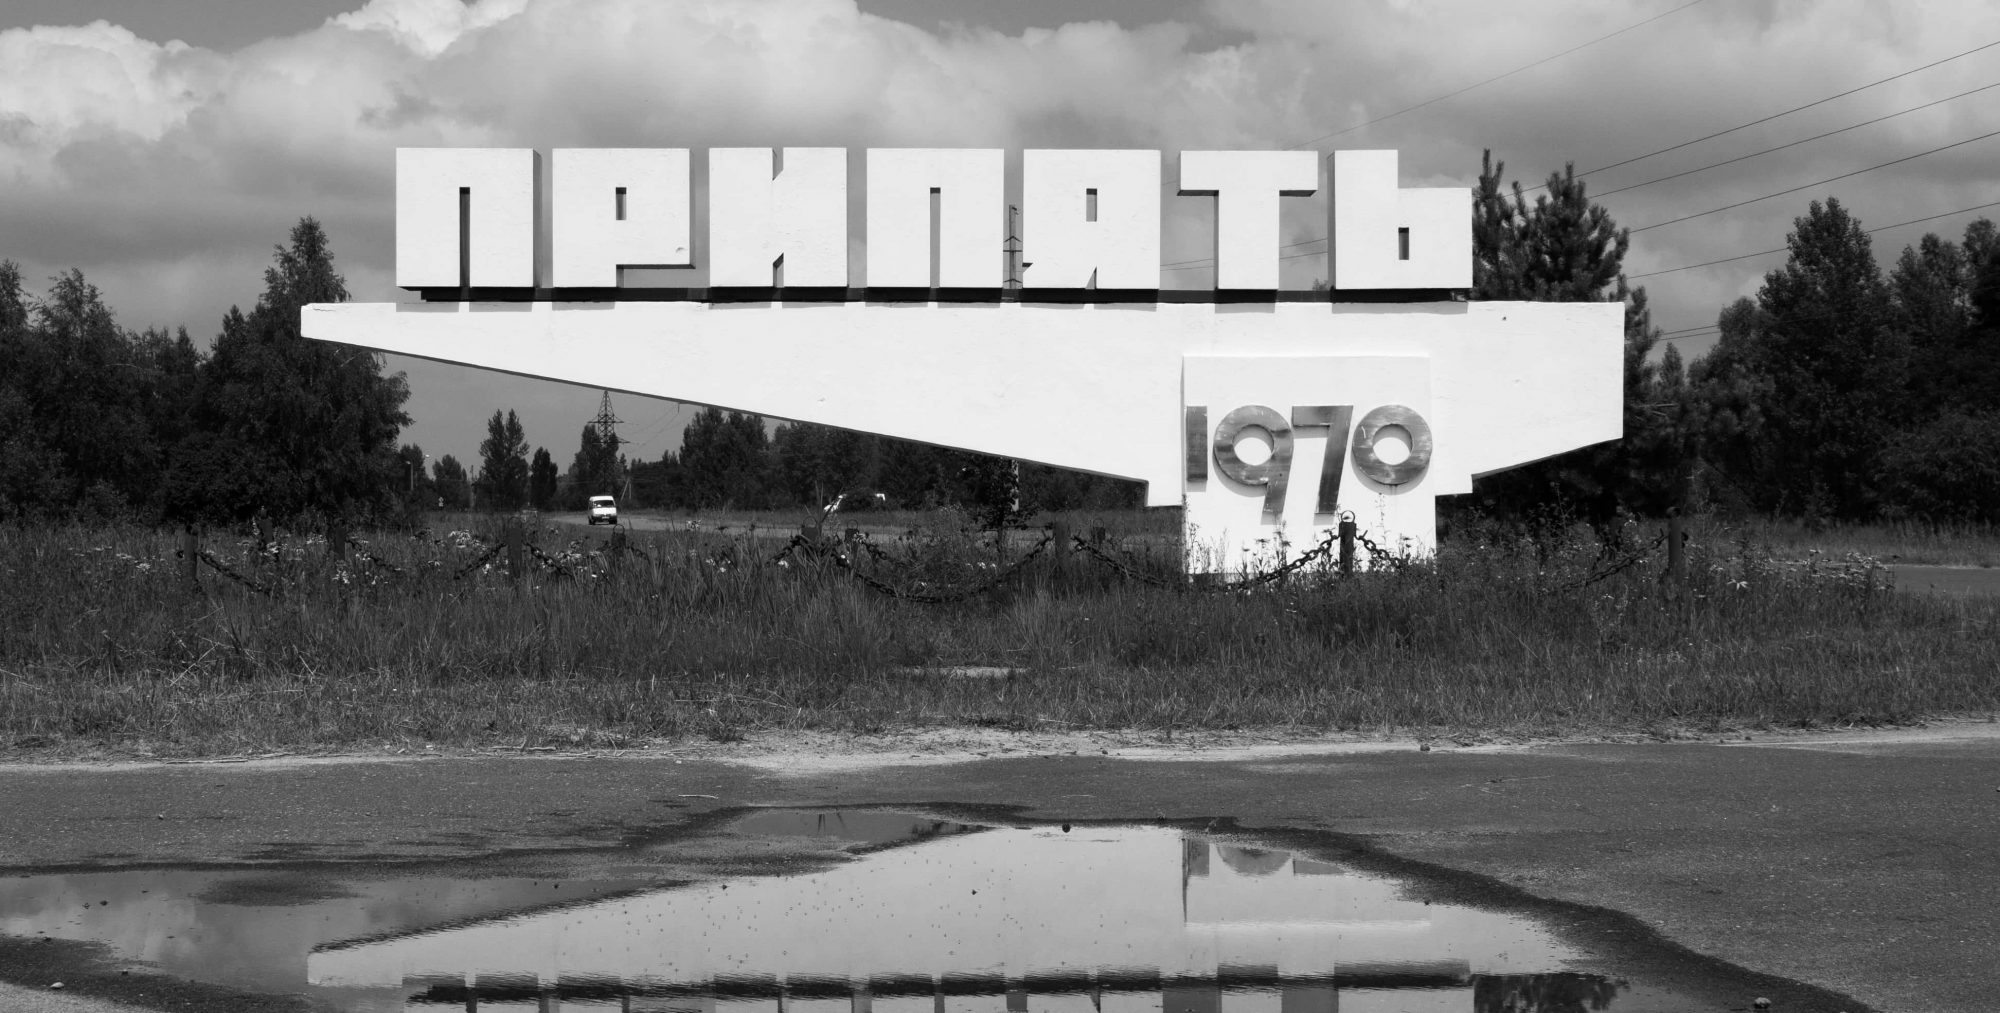 Entrance sign of Pripyat City. Source: markszelistowski.com